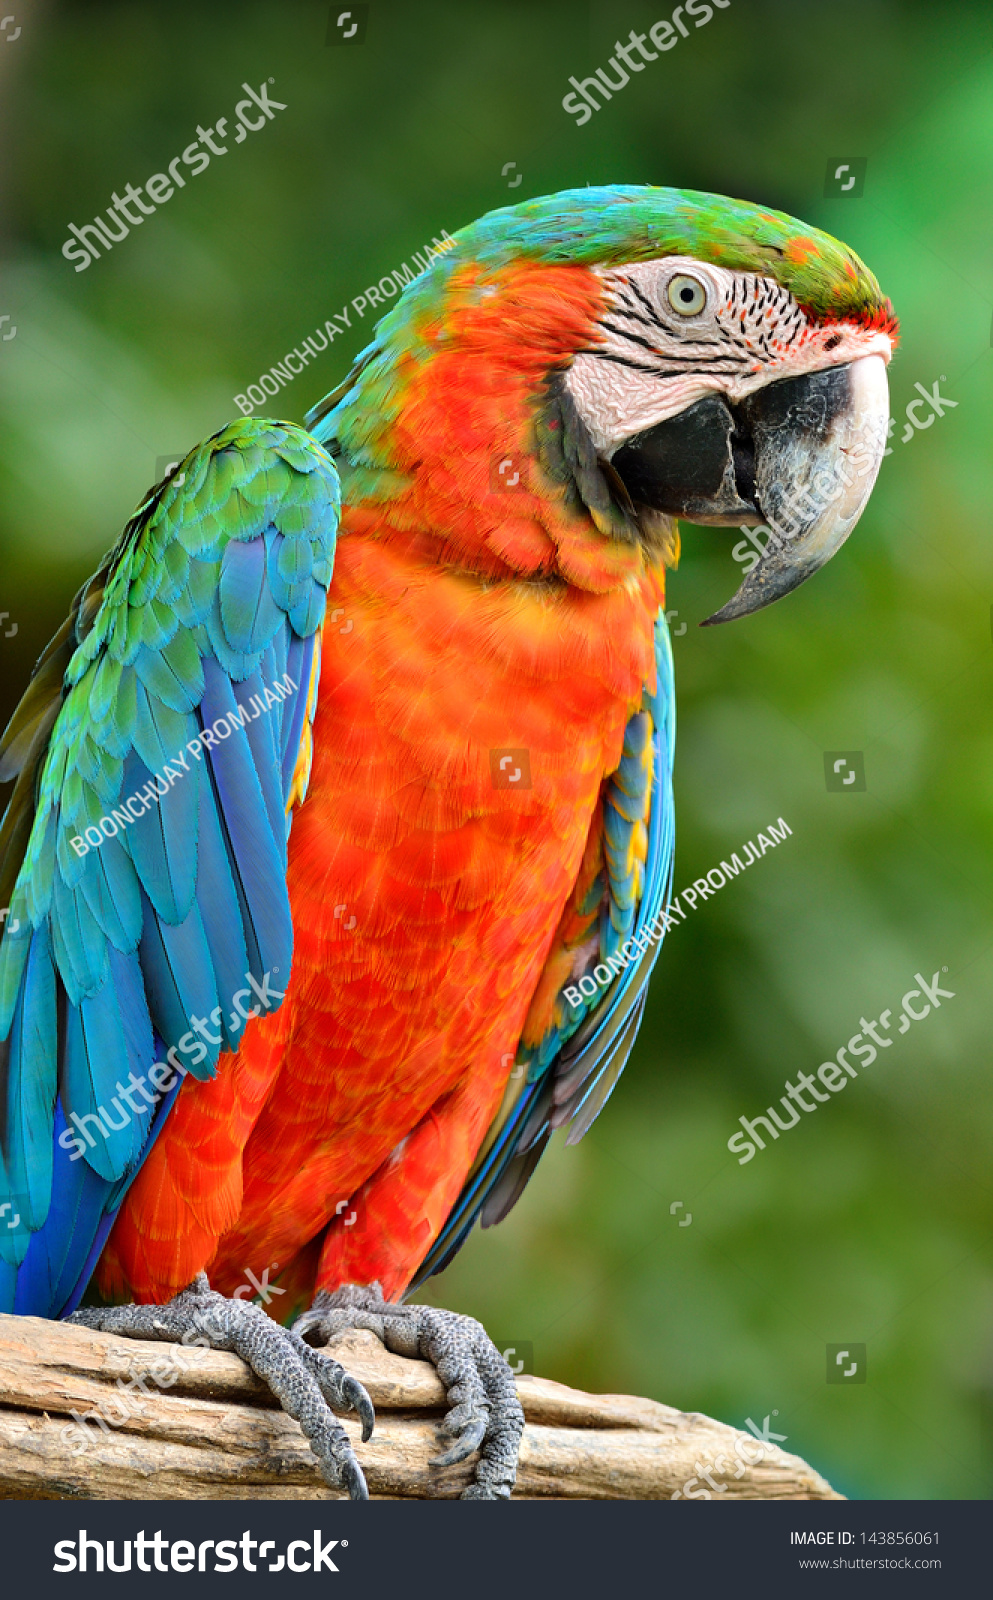 117 best images about Parrots on Pinterest | Australian capital ...